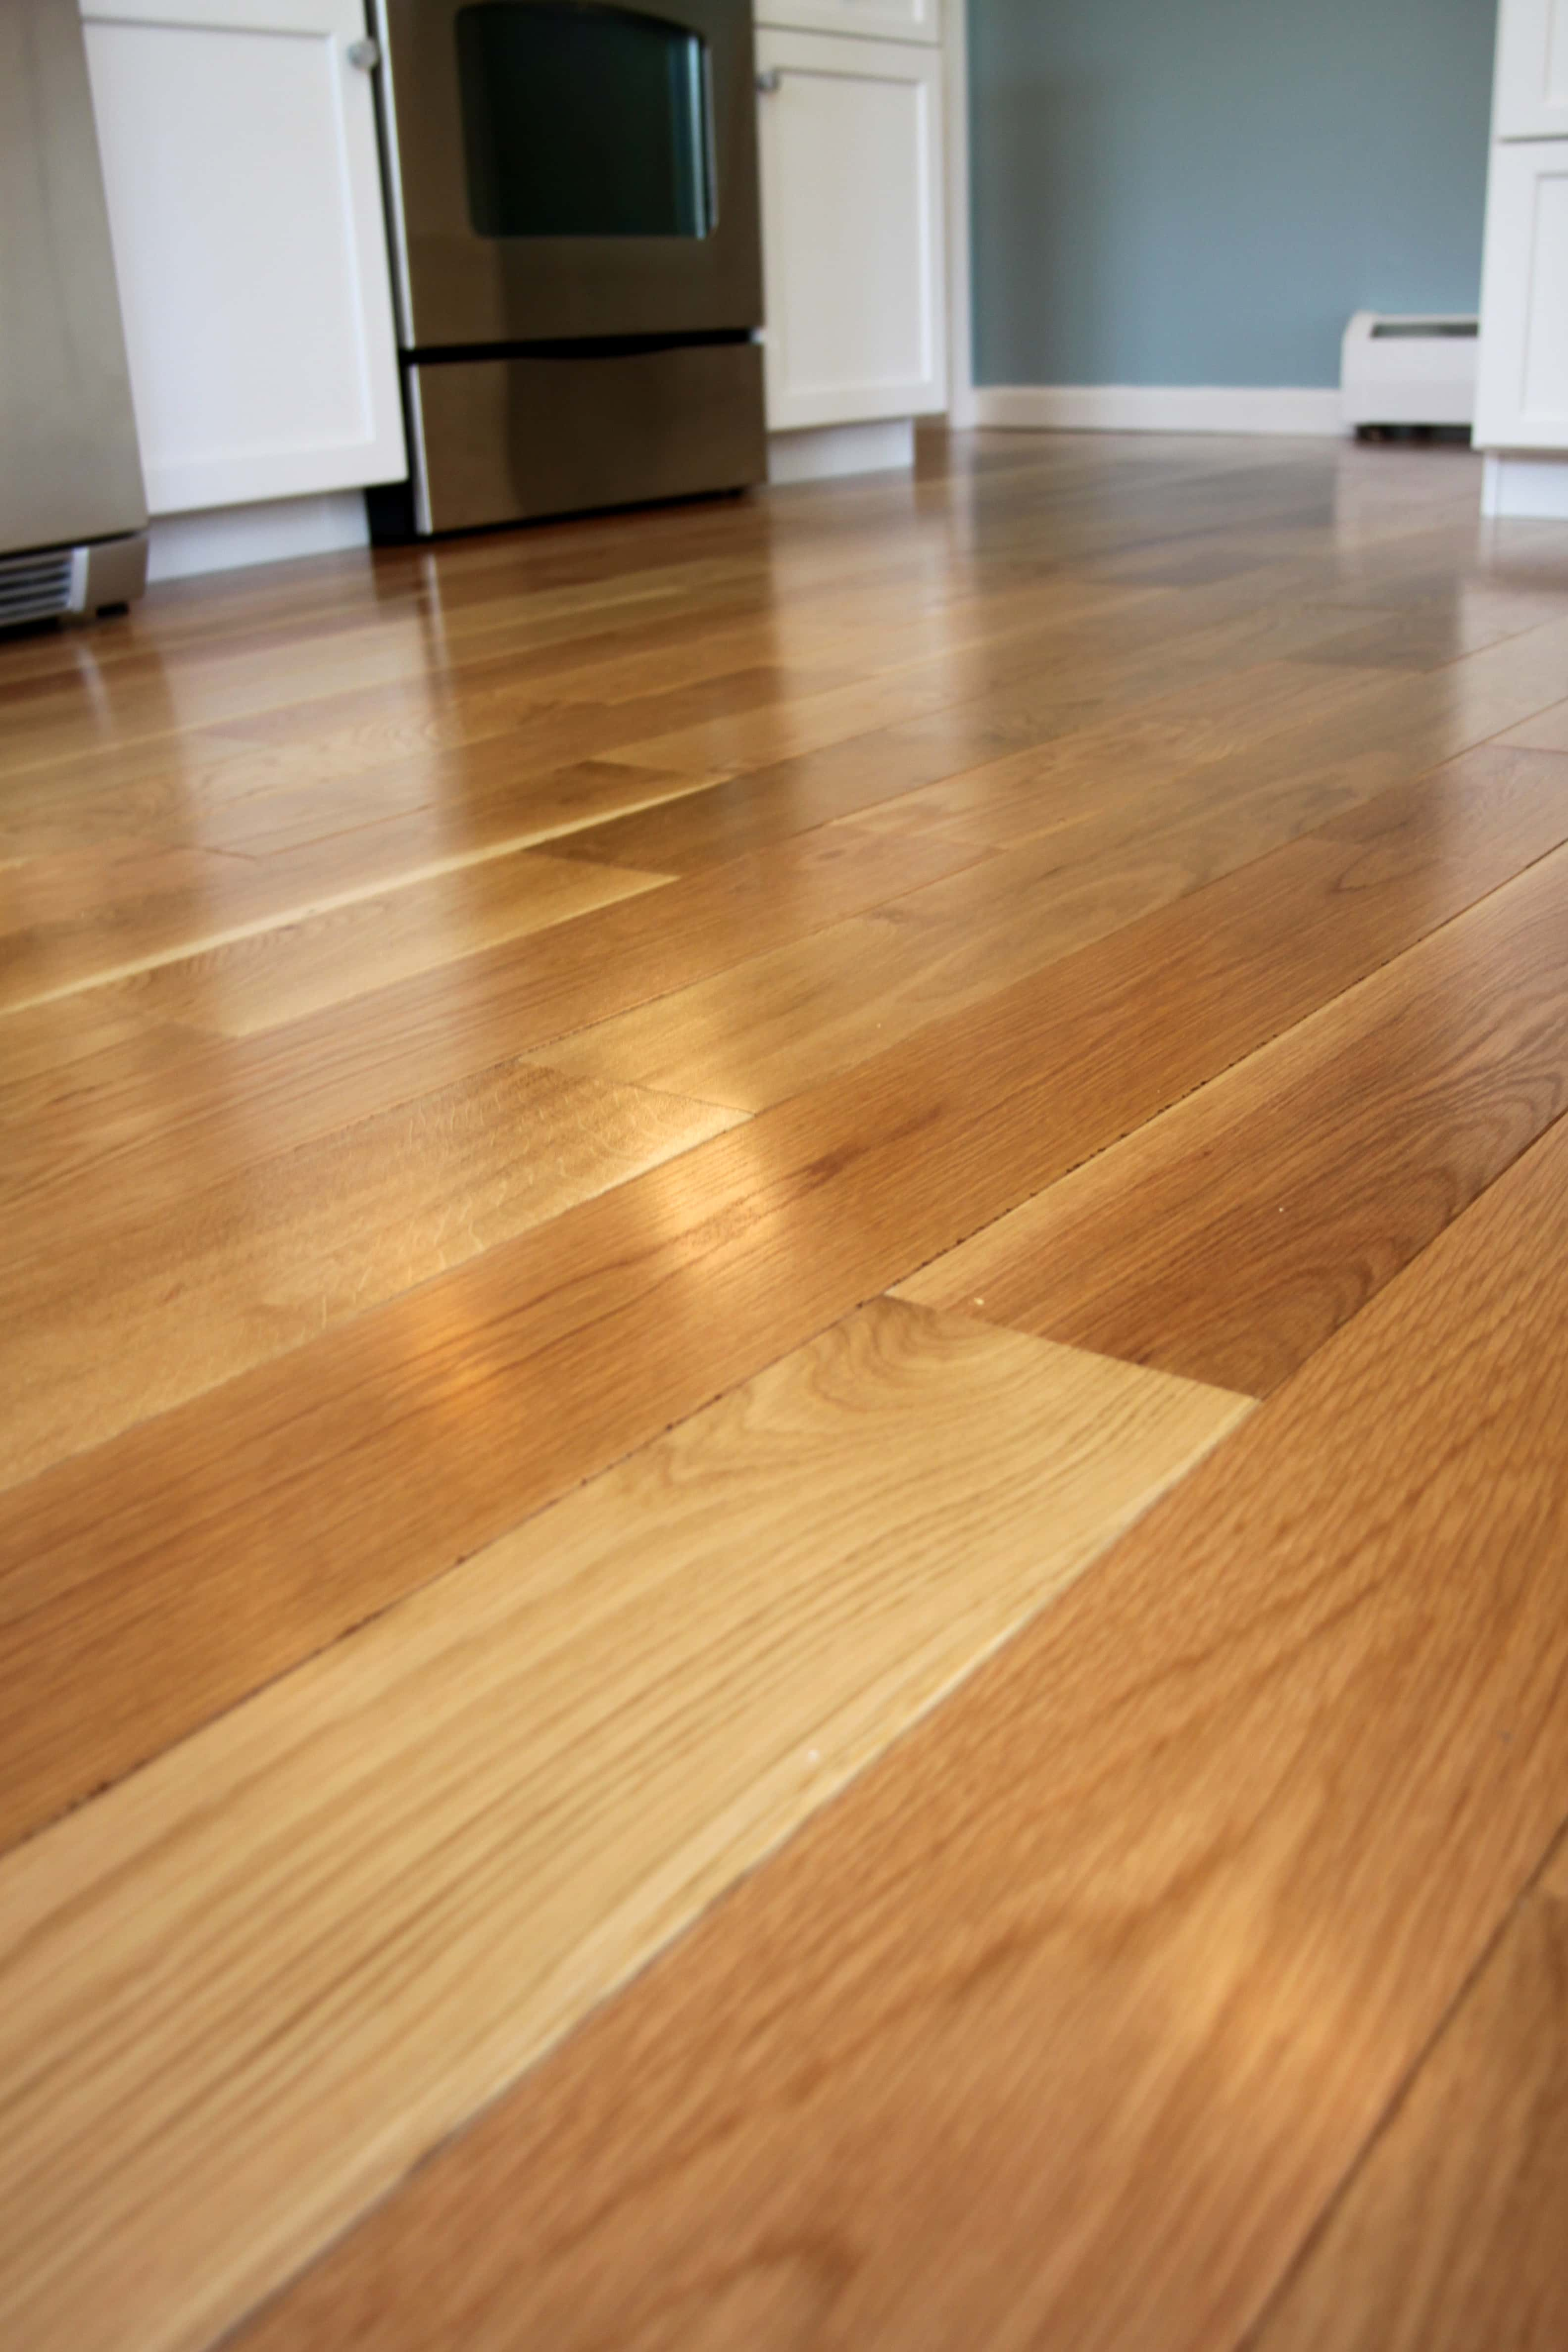 How To Avoid Early Finish Wear On Your Hardwood Floor